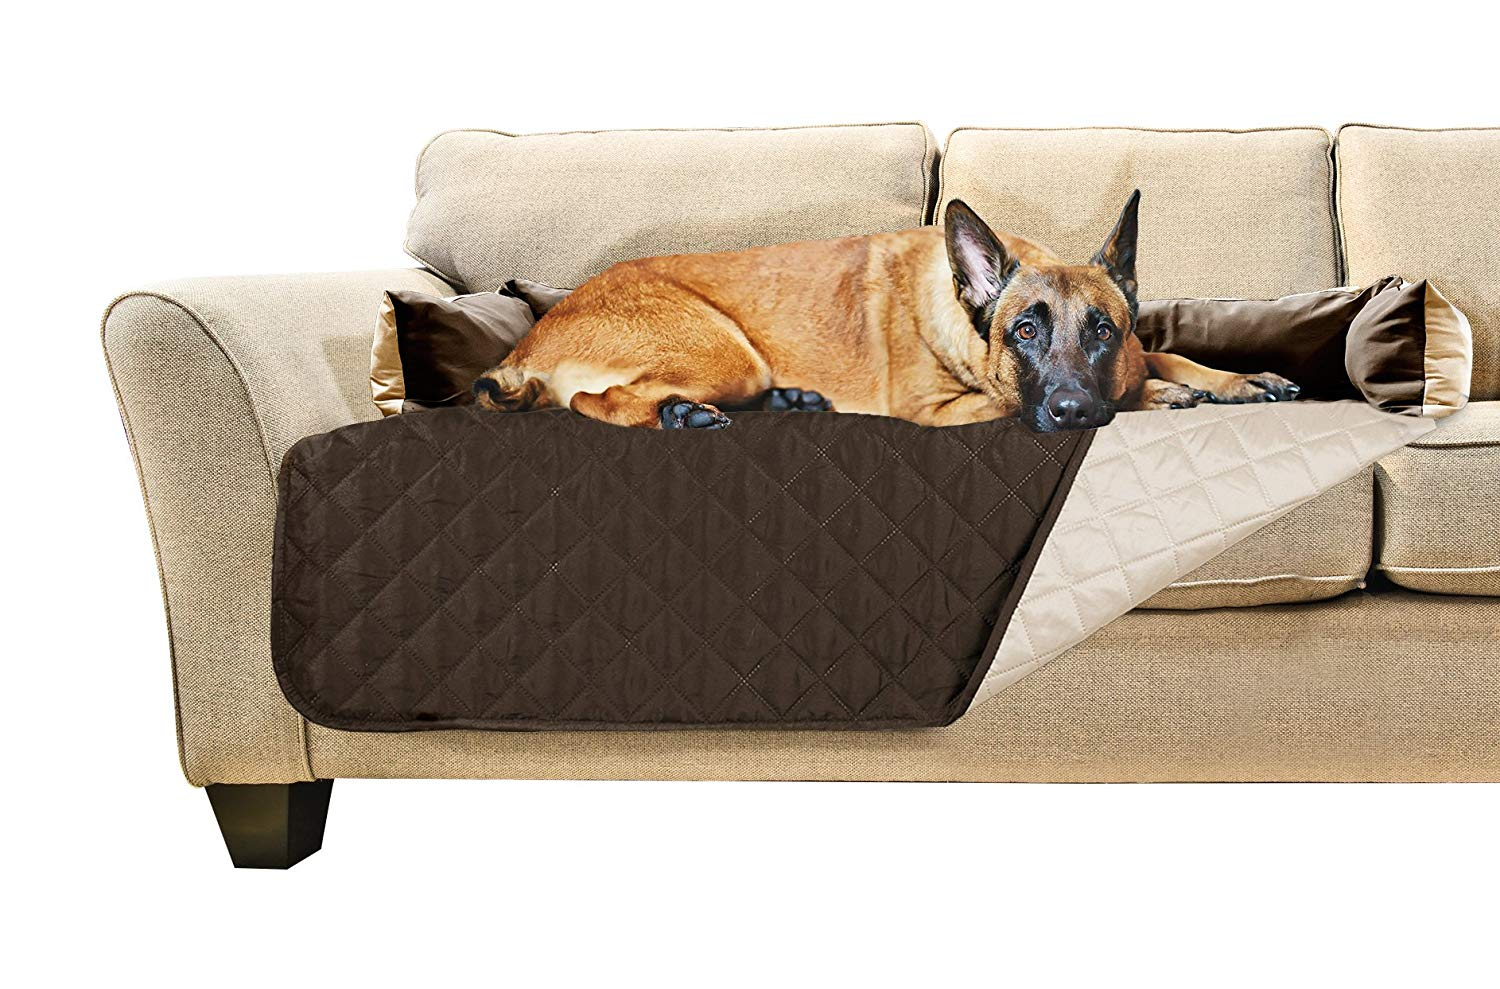 NEW PET BED FURNITURE COVER SOFA COVER PSBB